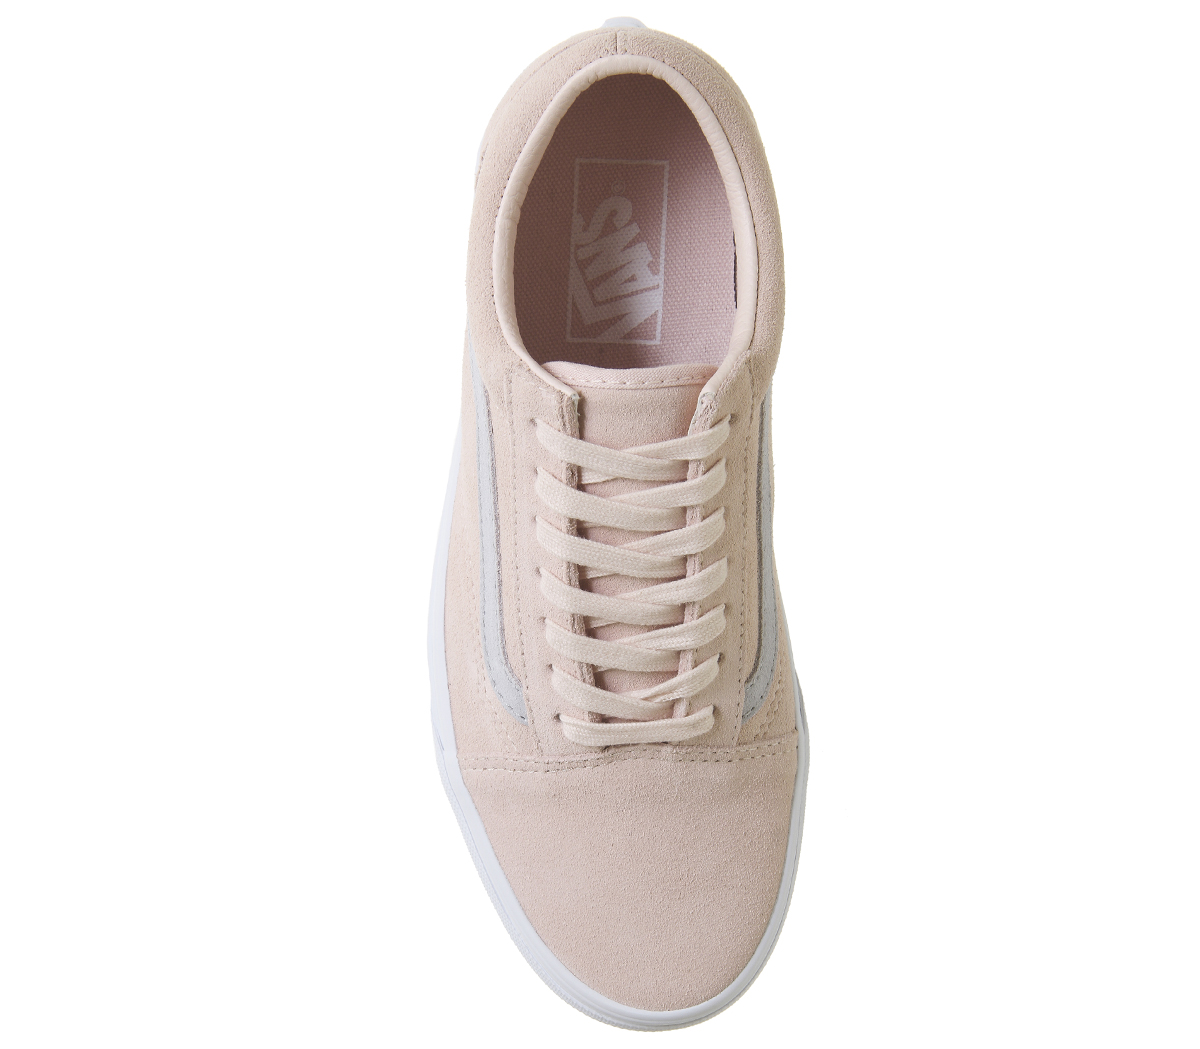 00614cc9384f3c Mens Vans Old Skool Trainers PALE PINK GREY EXCLUSIVE Trainers Shoes ...